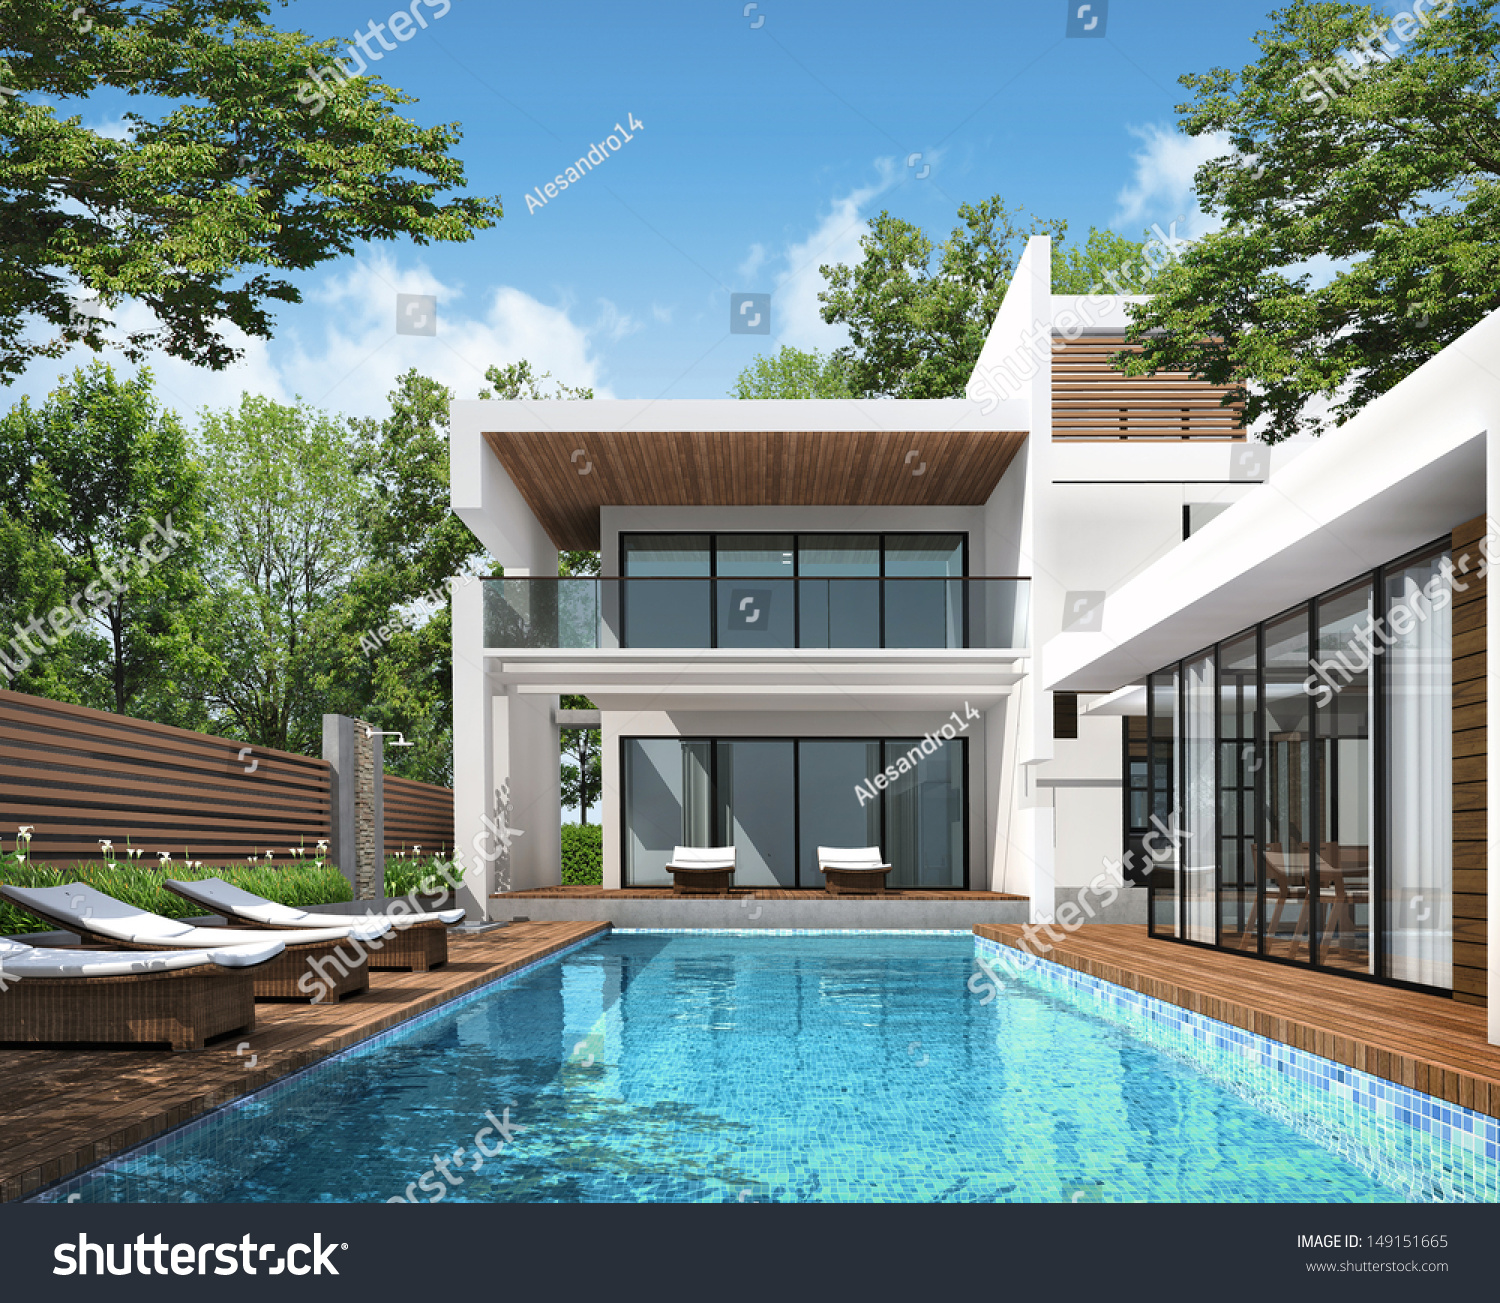 3d rendering tropical house exterior stock illustration for Exterior 3d rendering